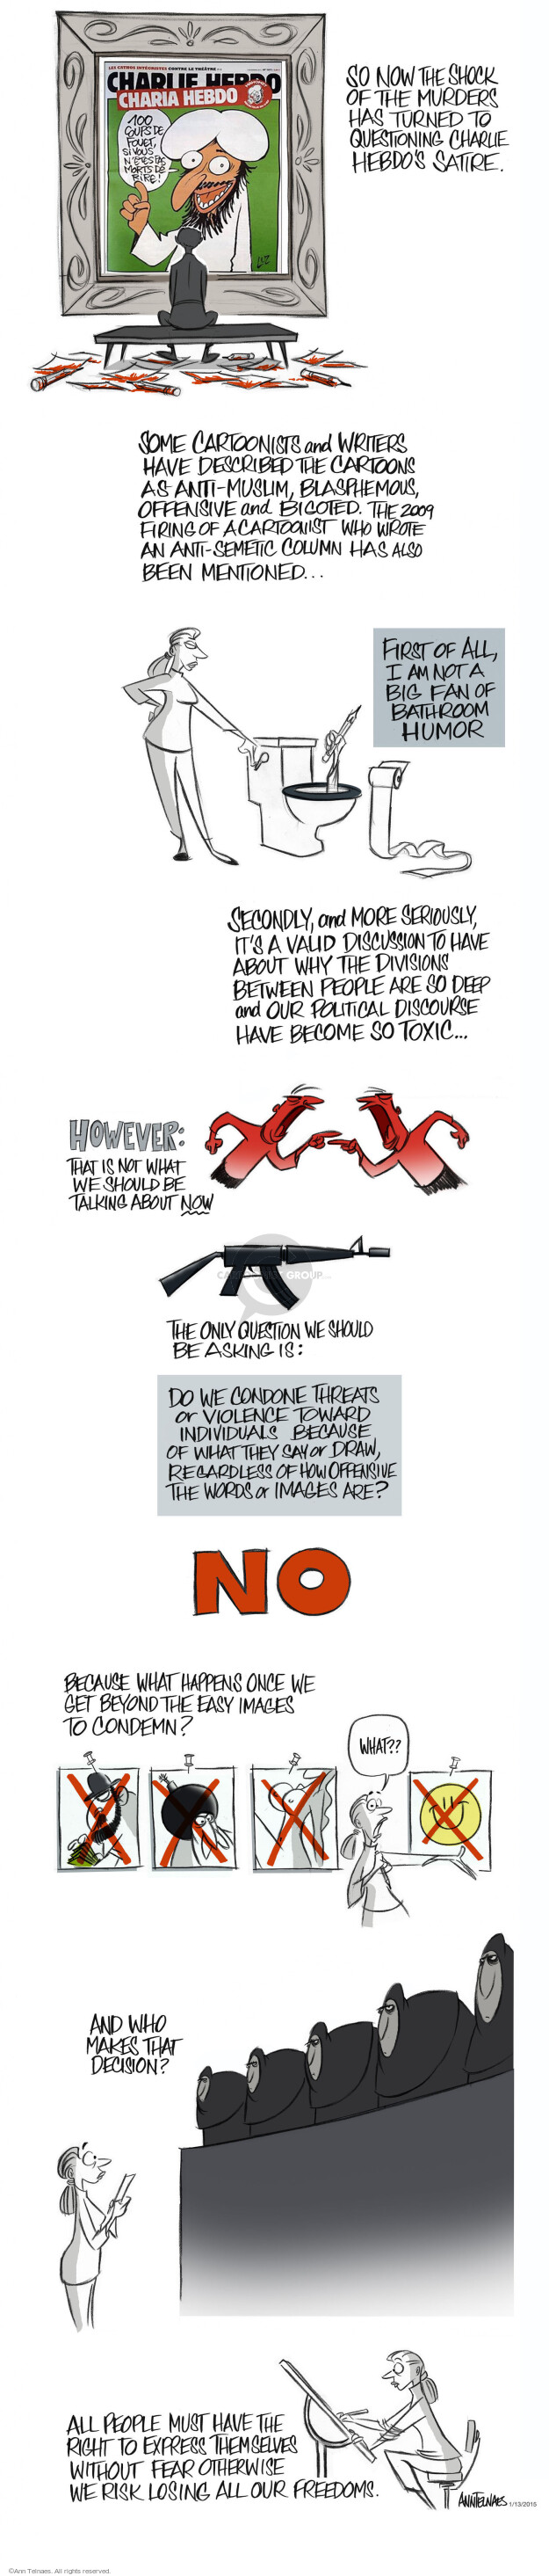 Ann Telnaes  Ann Telnaes' Editorial Cartoons 2015-01-13 Paris attack